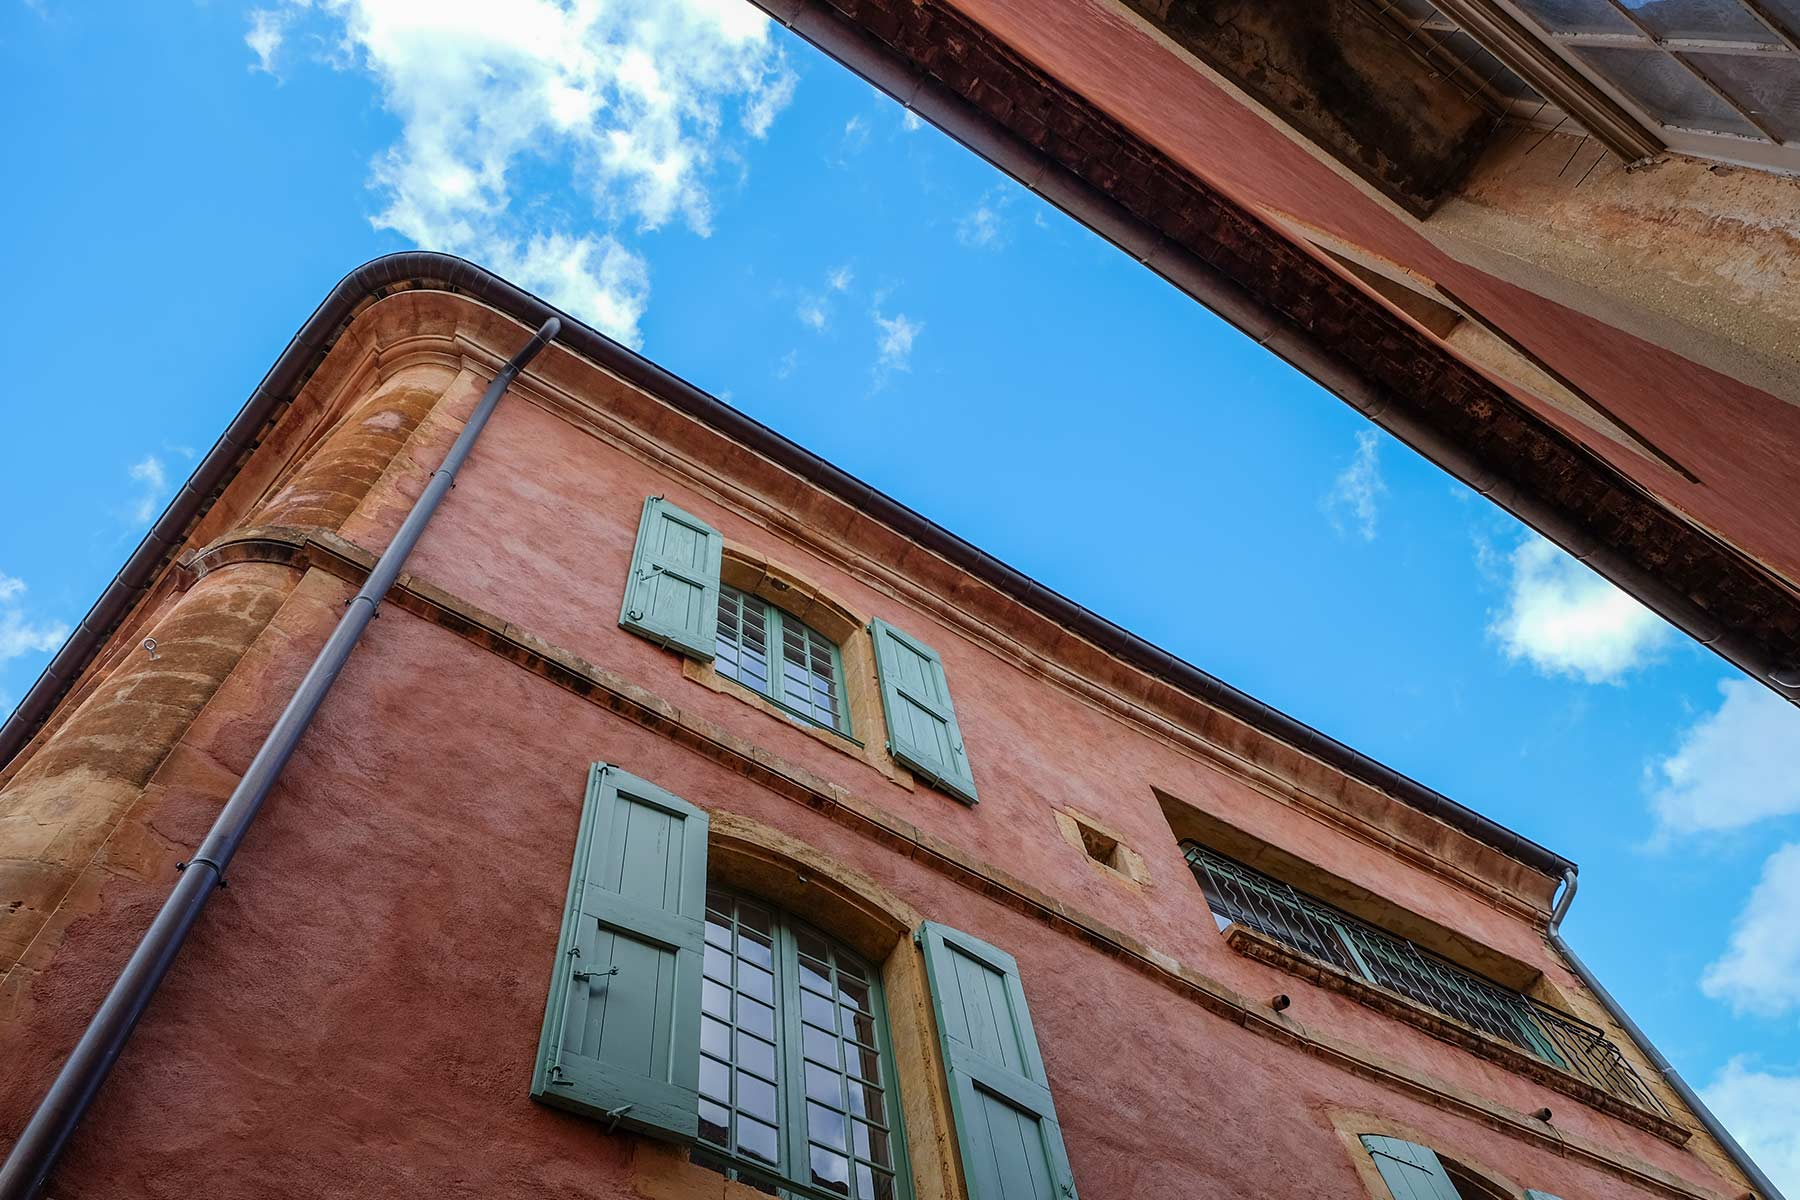 Roussillon in der Provence, Frankreich